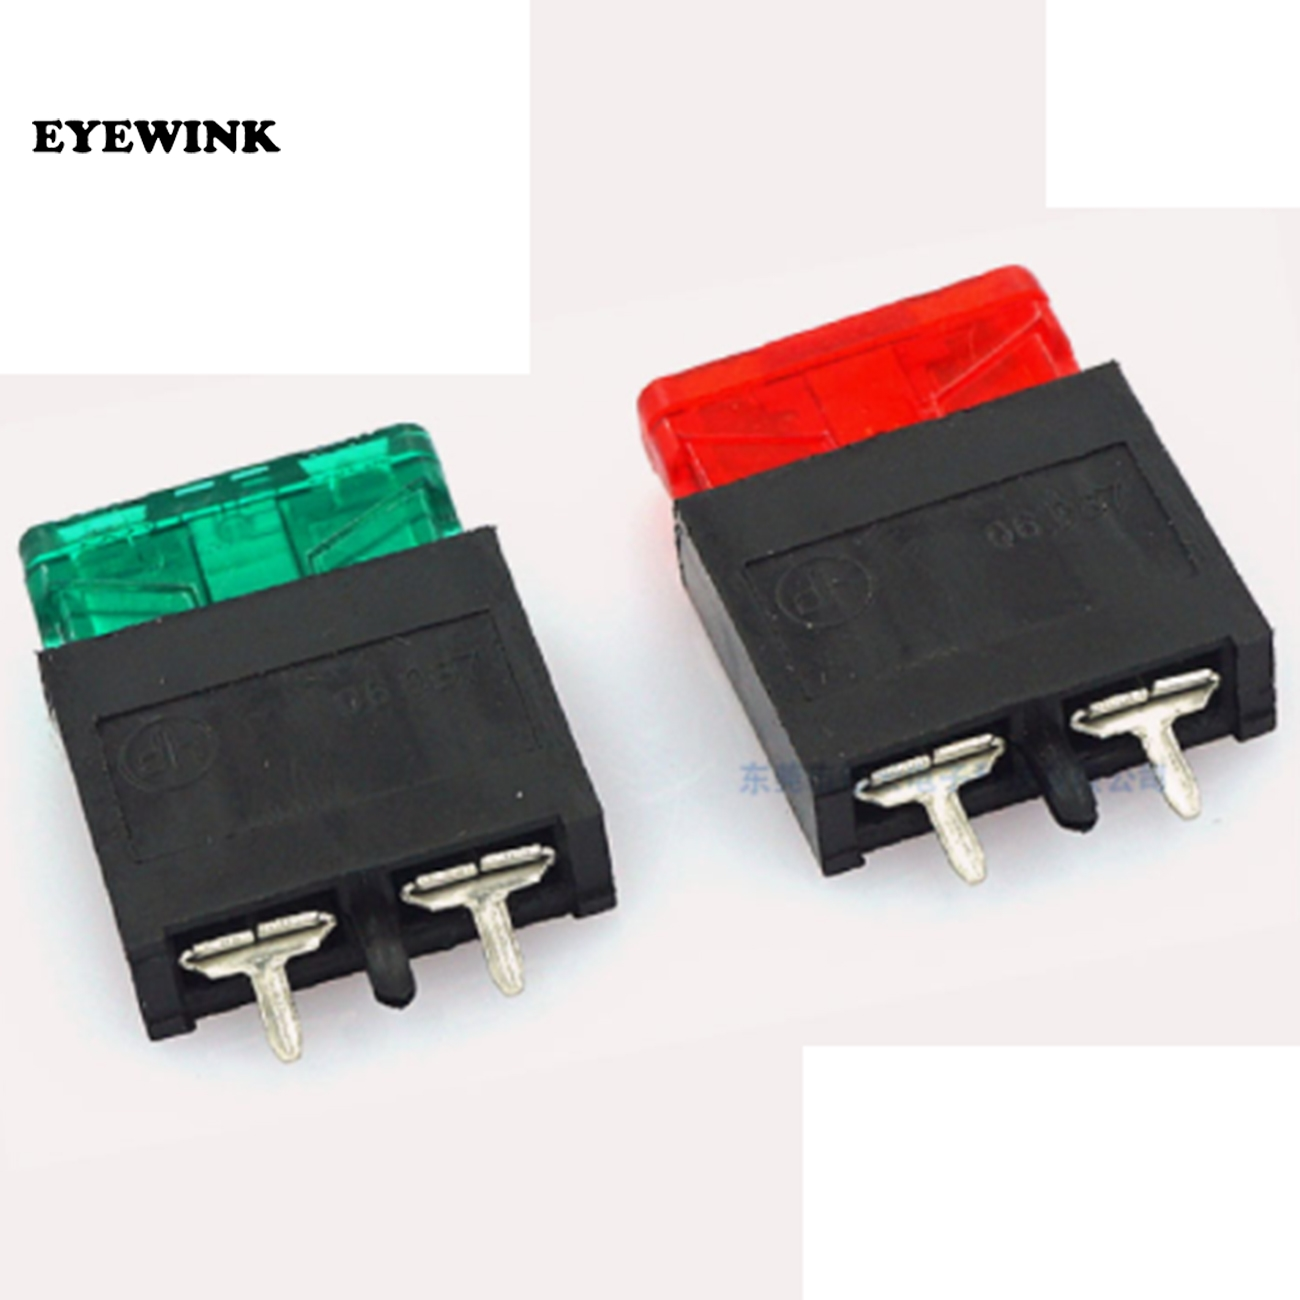 small resolution of 30pcs lot jh7032 car fuse holder pcb installation medium insert fuse fuse box fuse holder welding in integrated circuits from electronic components